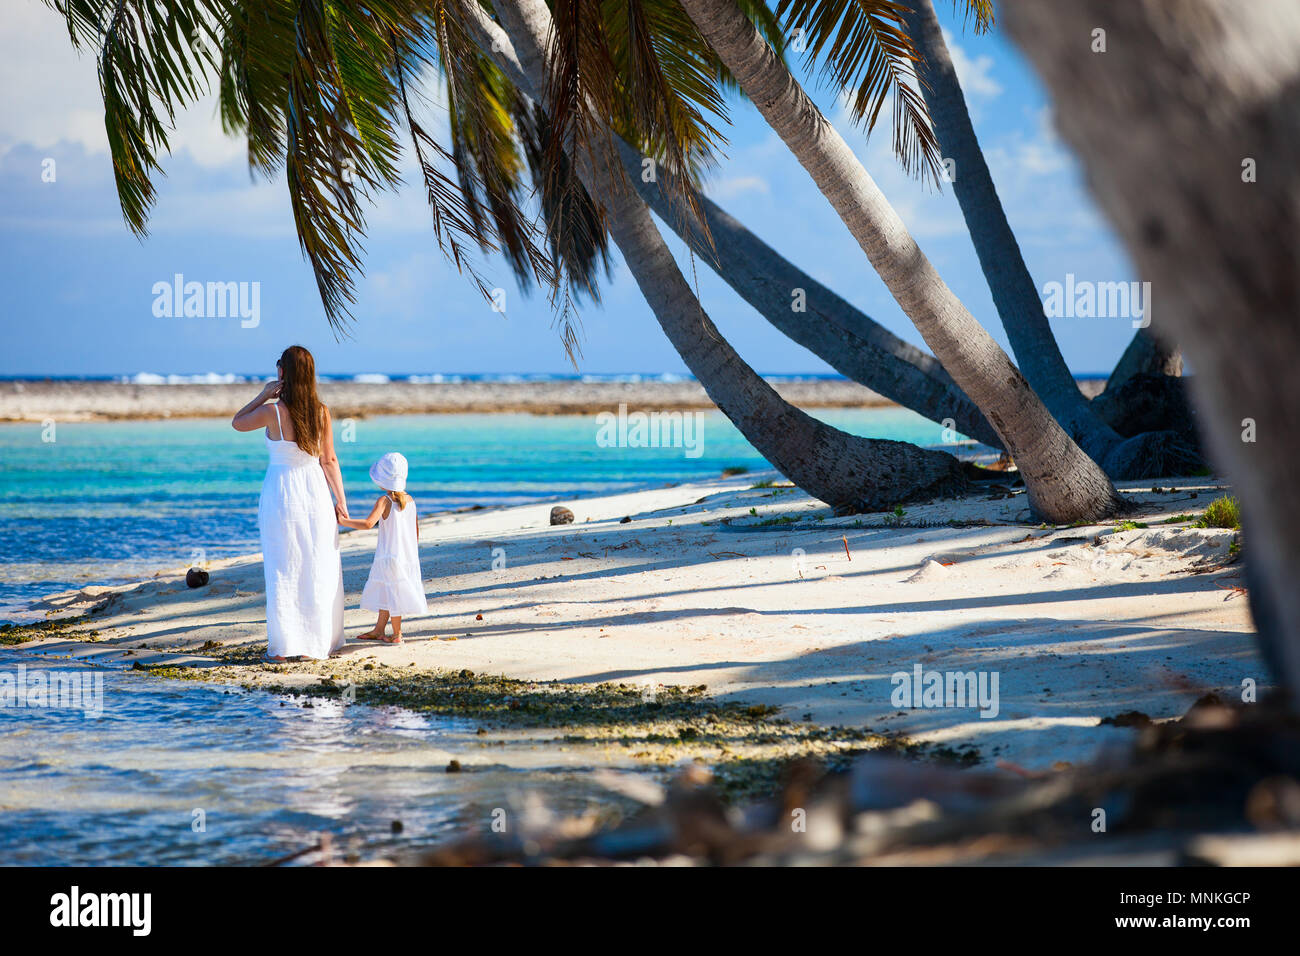 Back view of mother and daughter on a deserted island - Stock Image